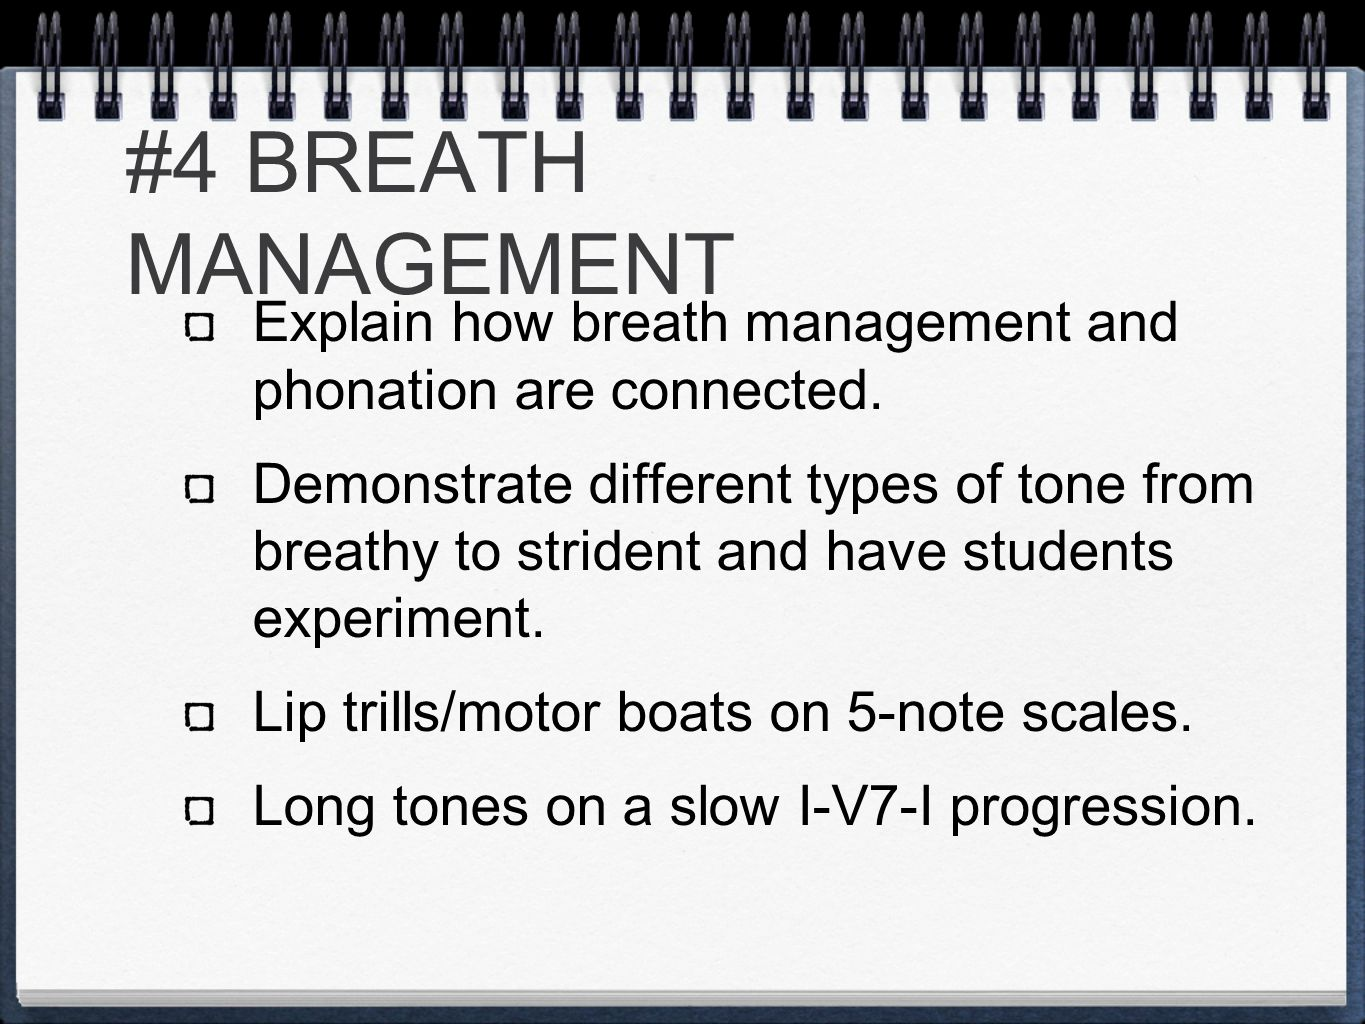 #4 BREATH MANAGEMENT Explain how breath management and phonation are connected.